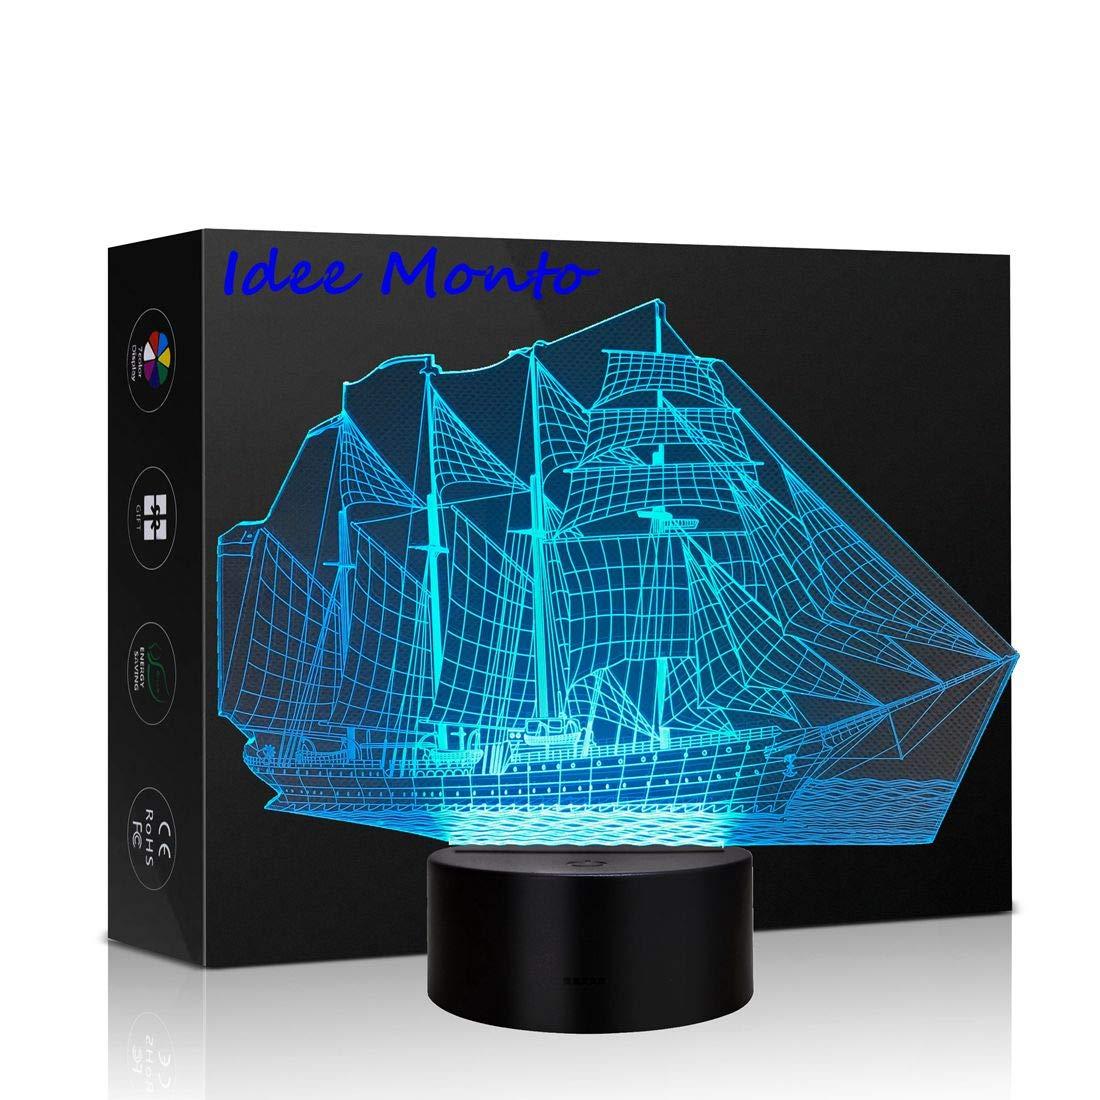 3D LED Illusion Light USB Night Lamp Desk Table Light 7 Colors Changing Touch Control Christmas Birthday Gift Kids Toy Bedroom Home Decoration Sailboat